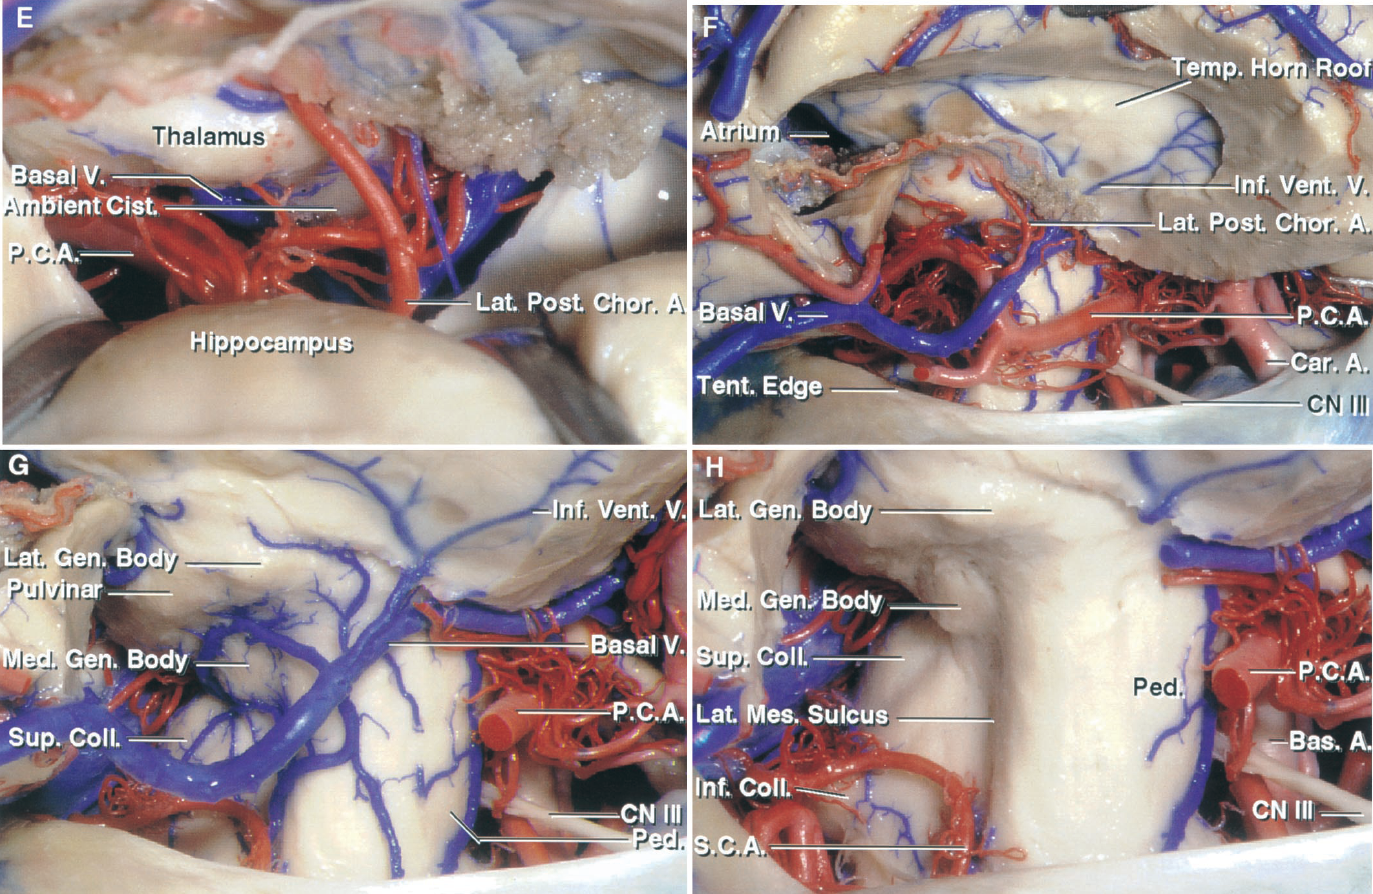 FIGURE 5.7. E–H. E, anterior and middle incisural space, enlarged view. The opening through the choroidal fissure exposes the basal vein and branches of the PCA in the upper part of the ambient cistern. The PCA gives off numerous branches to the choroid plexus, including a large lateral posterior choroidal artery. F, the hippocampus and the medial part of the temporal lobe, including the parahippocampal gyrus, have been removed to expose the upper part of the middle incisural space. The PCA and basal vein course through the middle incisural space on the medial side of the parahippocampal gyrus, which has been removed. The choroid plexus remains attached along the choroidal fissure located between the fimbria and the lower surface of the thalamus. The inferior ventricular veins drain the roof of the temporal horn and empty into the basal vein. G, the branches of the PCA have been removed to expose the basal vein, which originates below the anterior perforated substance and courses posteriorly through the middle incisural space to gain access to the posterior incisural space and the quadrigeminal cistern. The pulvinar and lower surface of the thalamus, including the geniculate bodies, are in the upper margin of the exposure. H, the basal vein has been removed. This exposes the lateral aspect of the cerebral peduncle and the tegmental part of the midbrain, which are separated by the lateral mesencephalic sulcus. The medial and lateral geniculate bodies protrude downward from the lower surface of the thalamus.